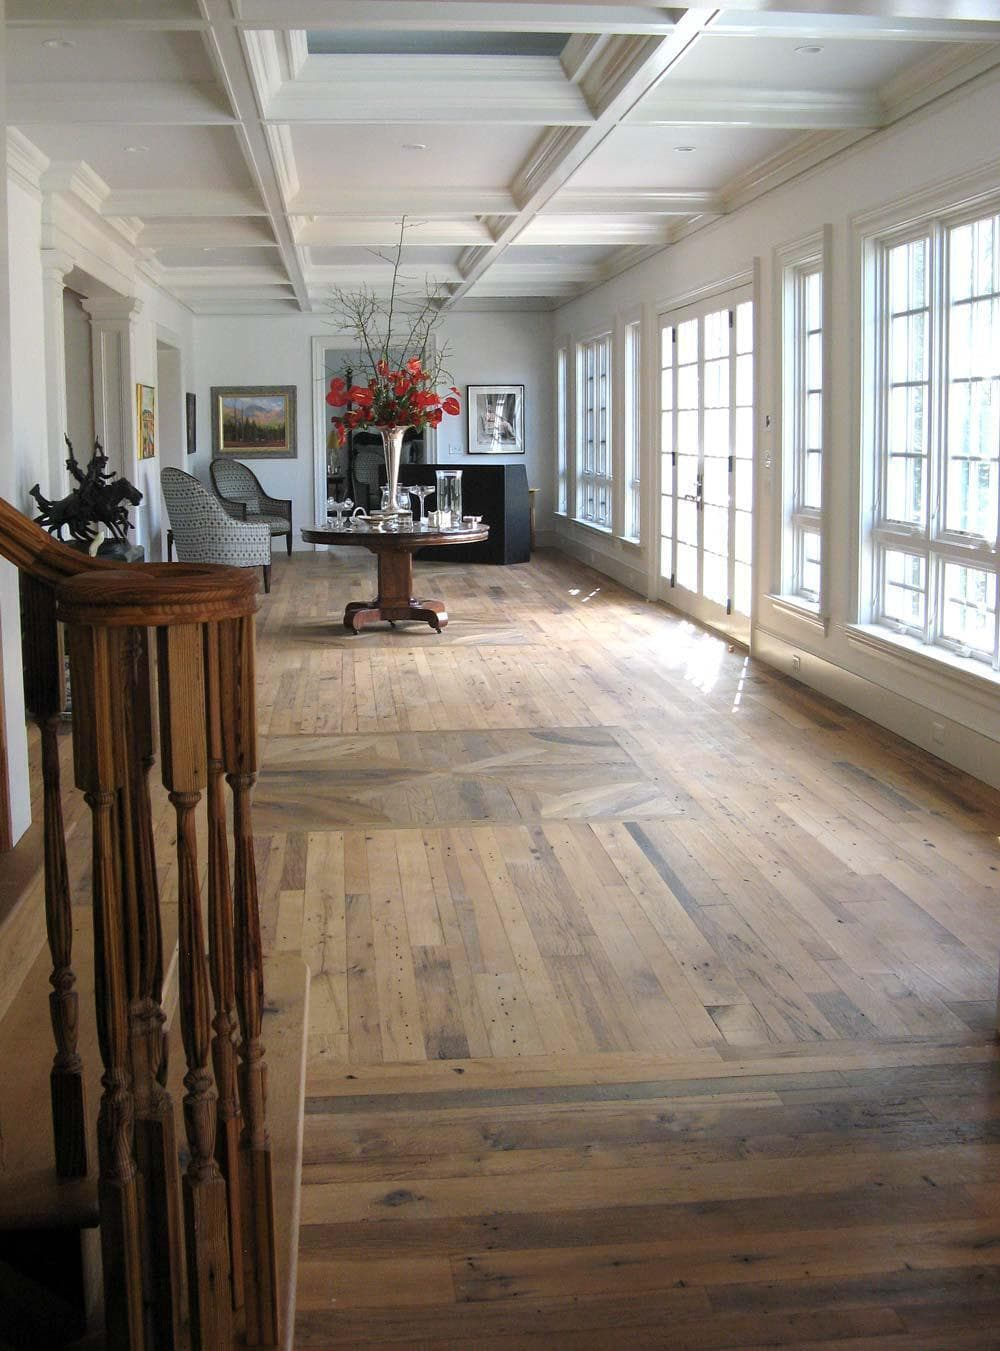 Reclaimed wood flooring in long living room with many windows.